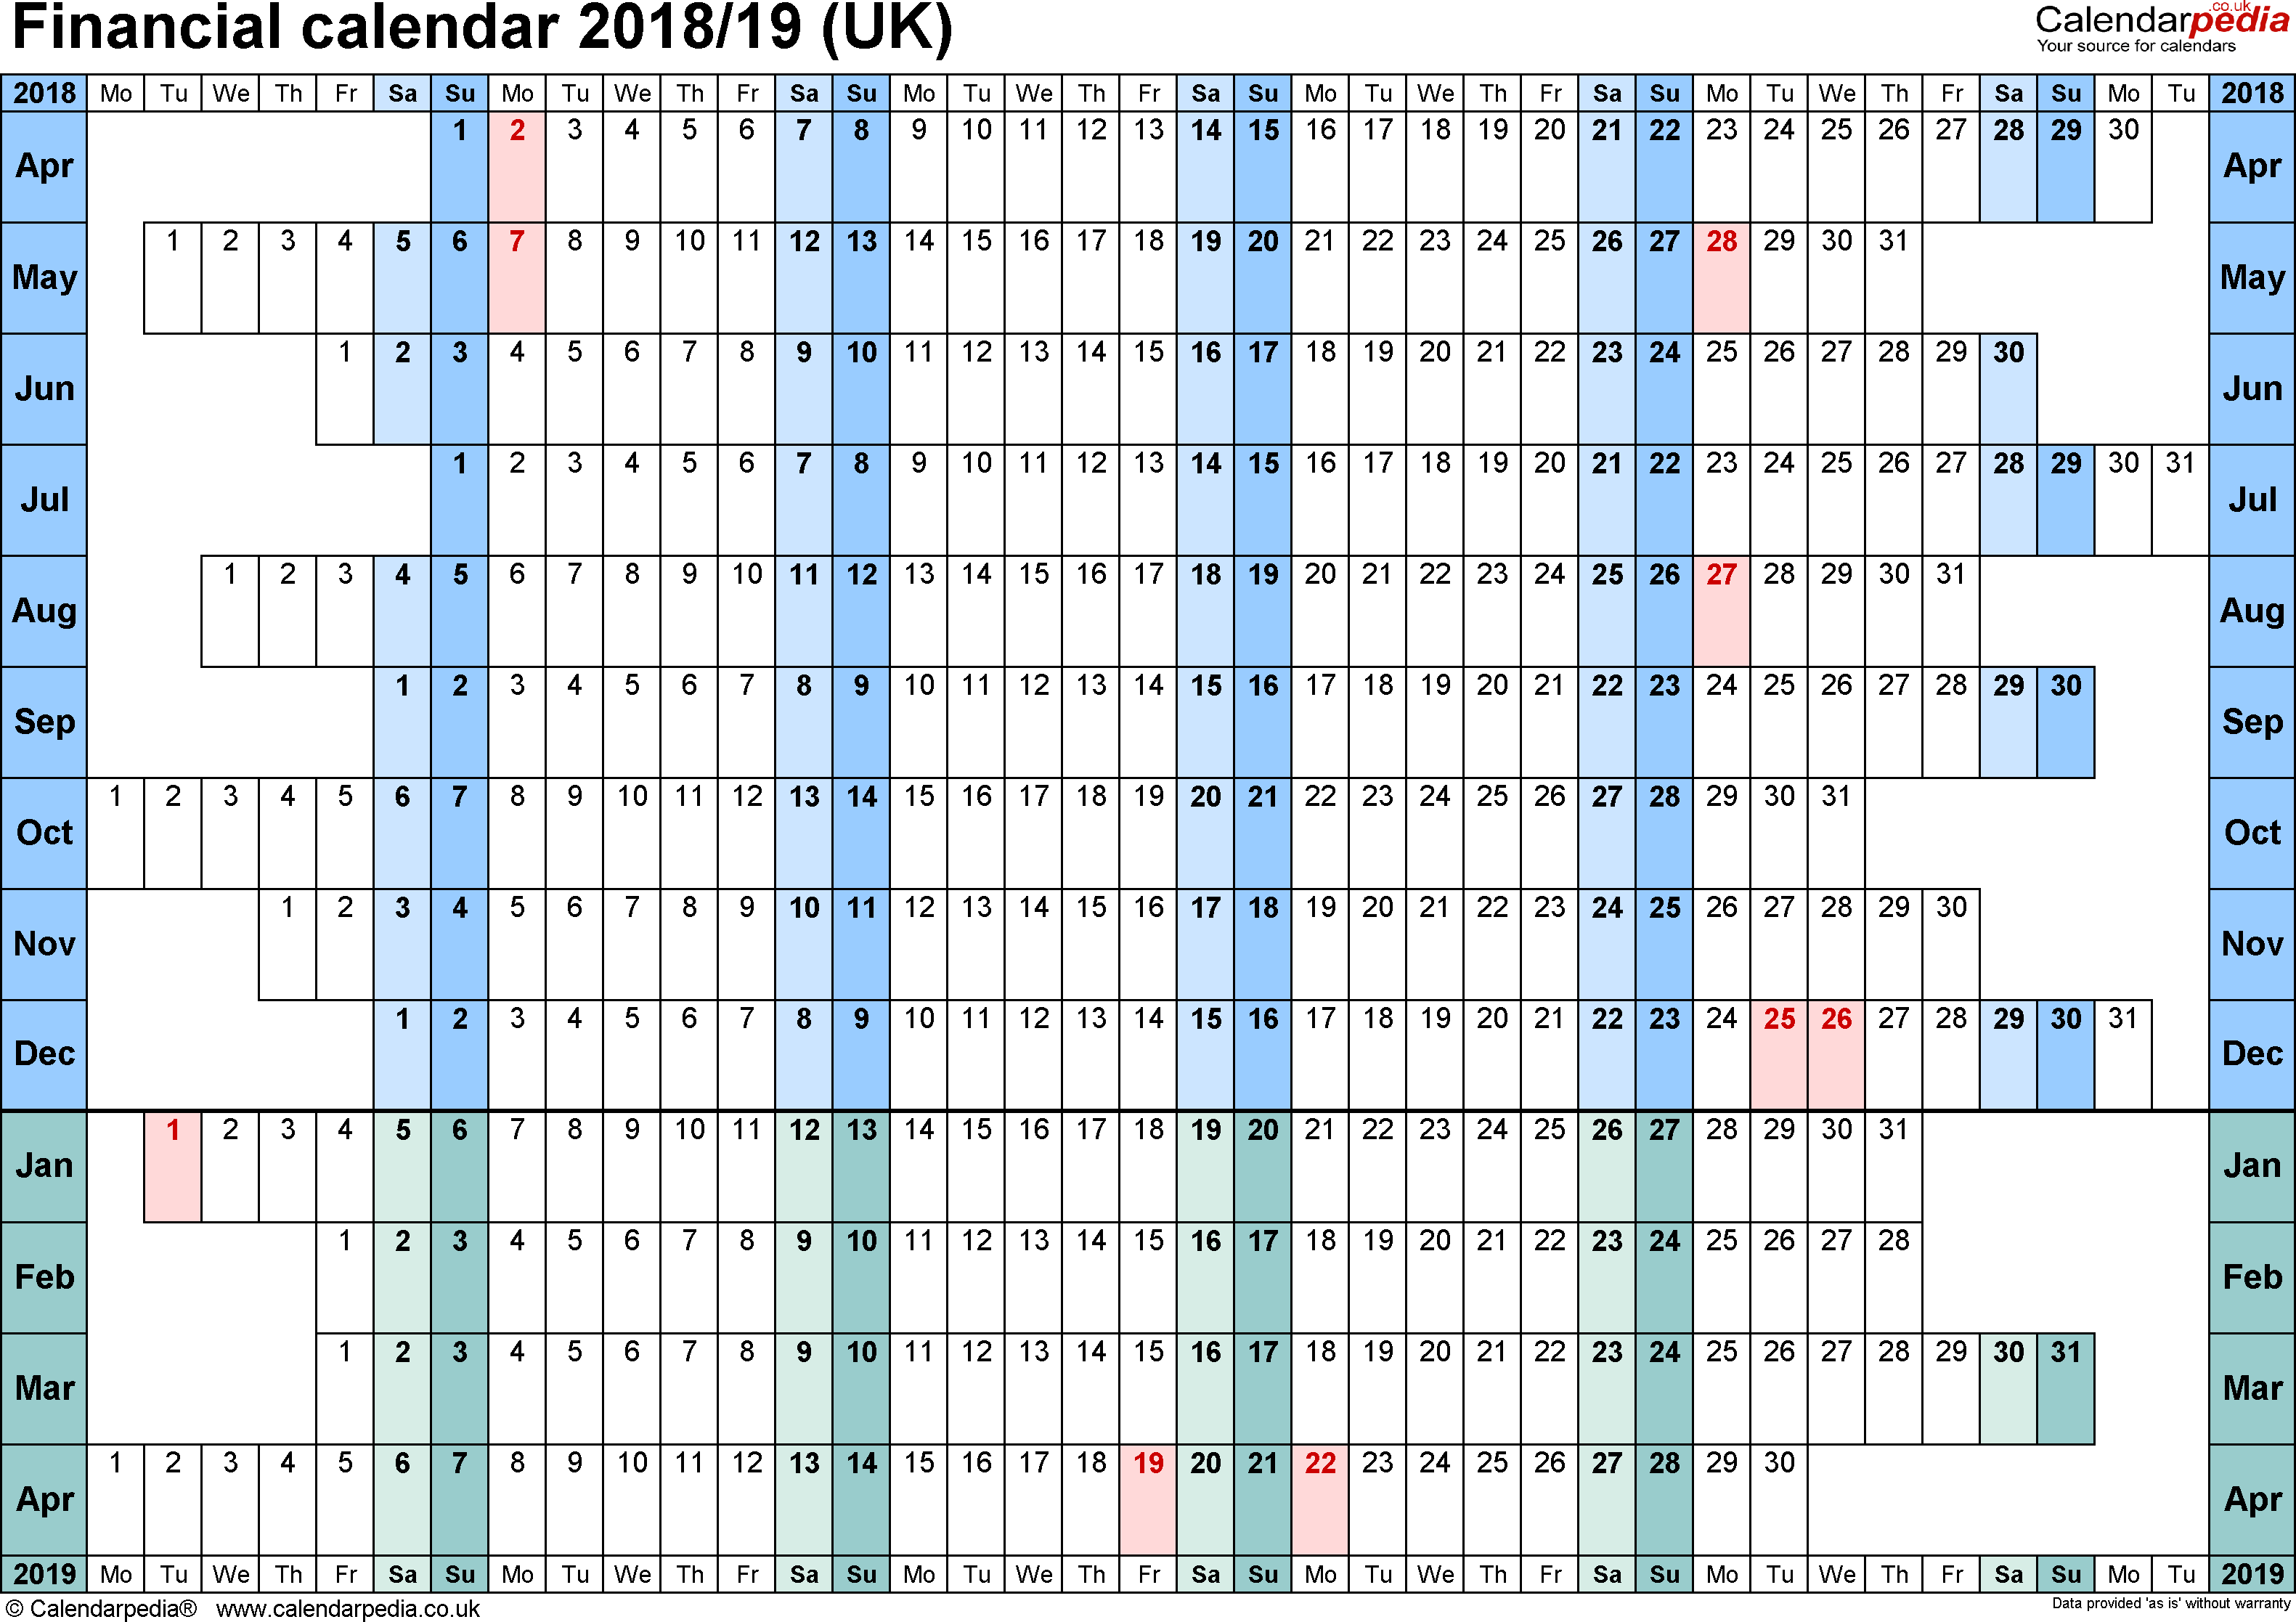 Fiscal Year 2019 Accounting Calendar With Financial Calendars 2018 19 UK In PDF Format